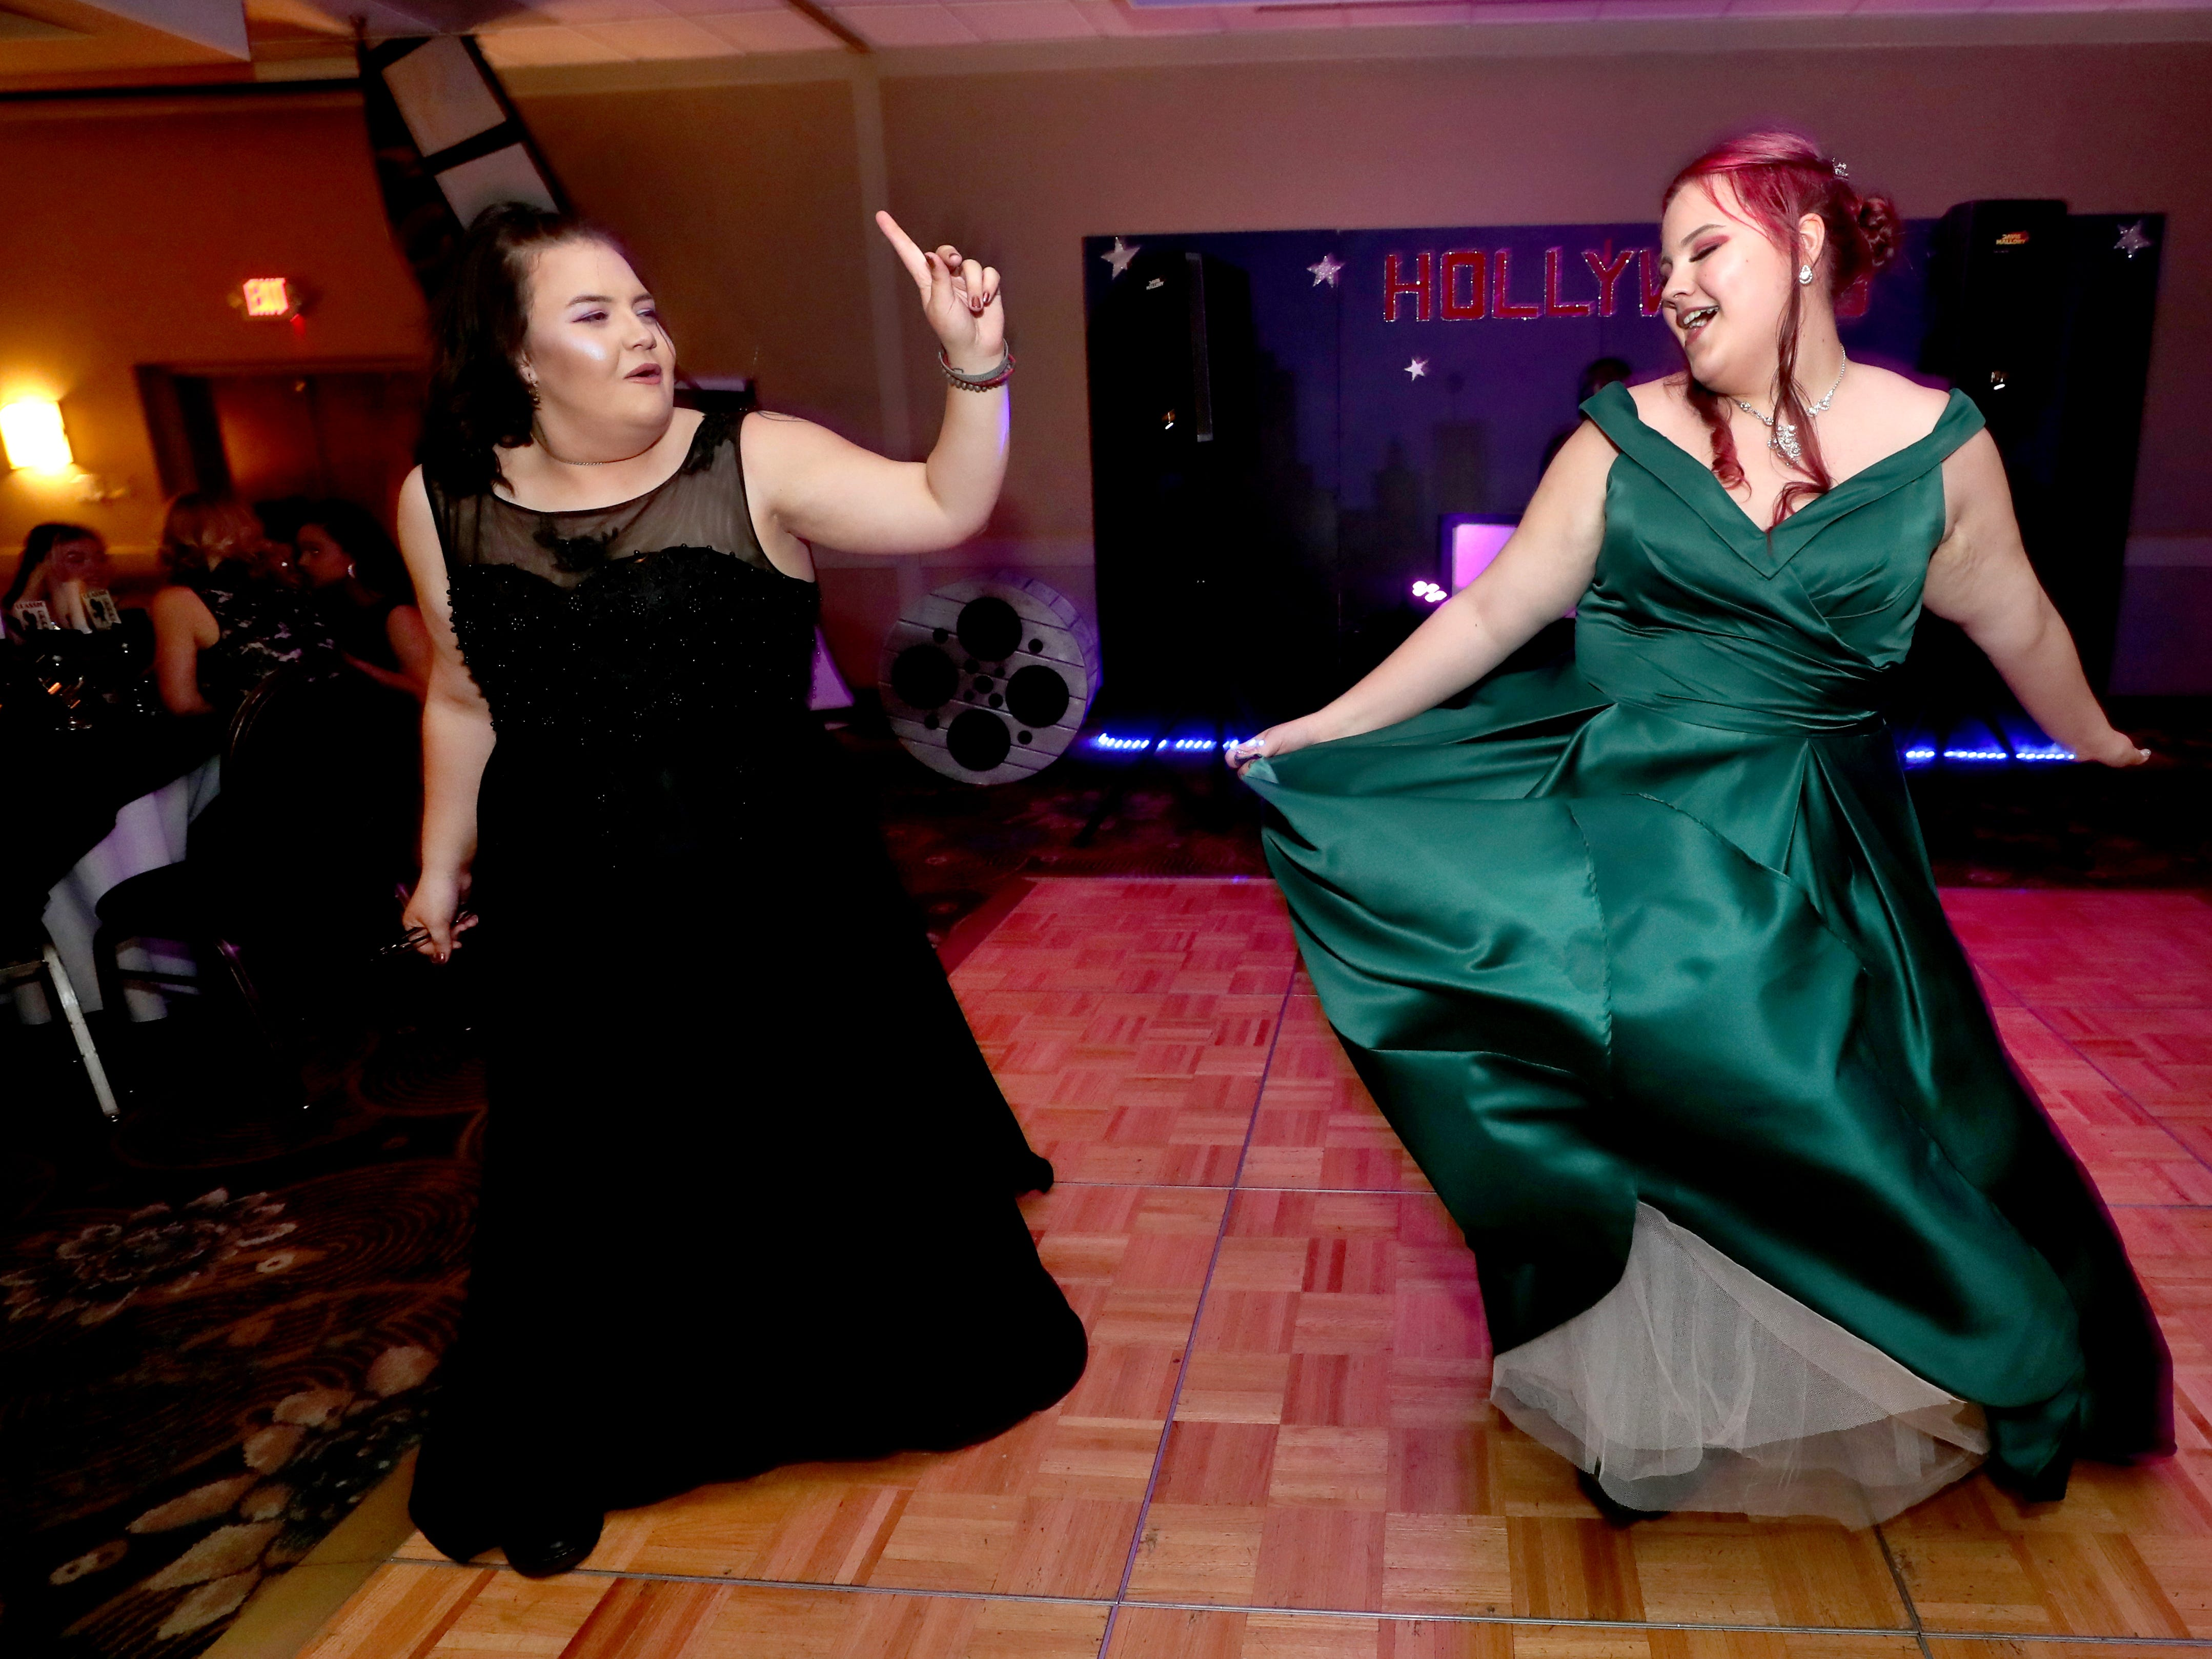 Tina Jernigan, left and Evie Douglas, right dance on the dance floor at Holloway's prom at the DoubleTree on Thursday April 18, 2019.